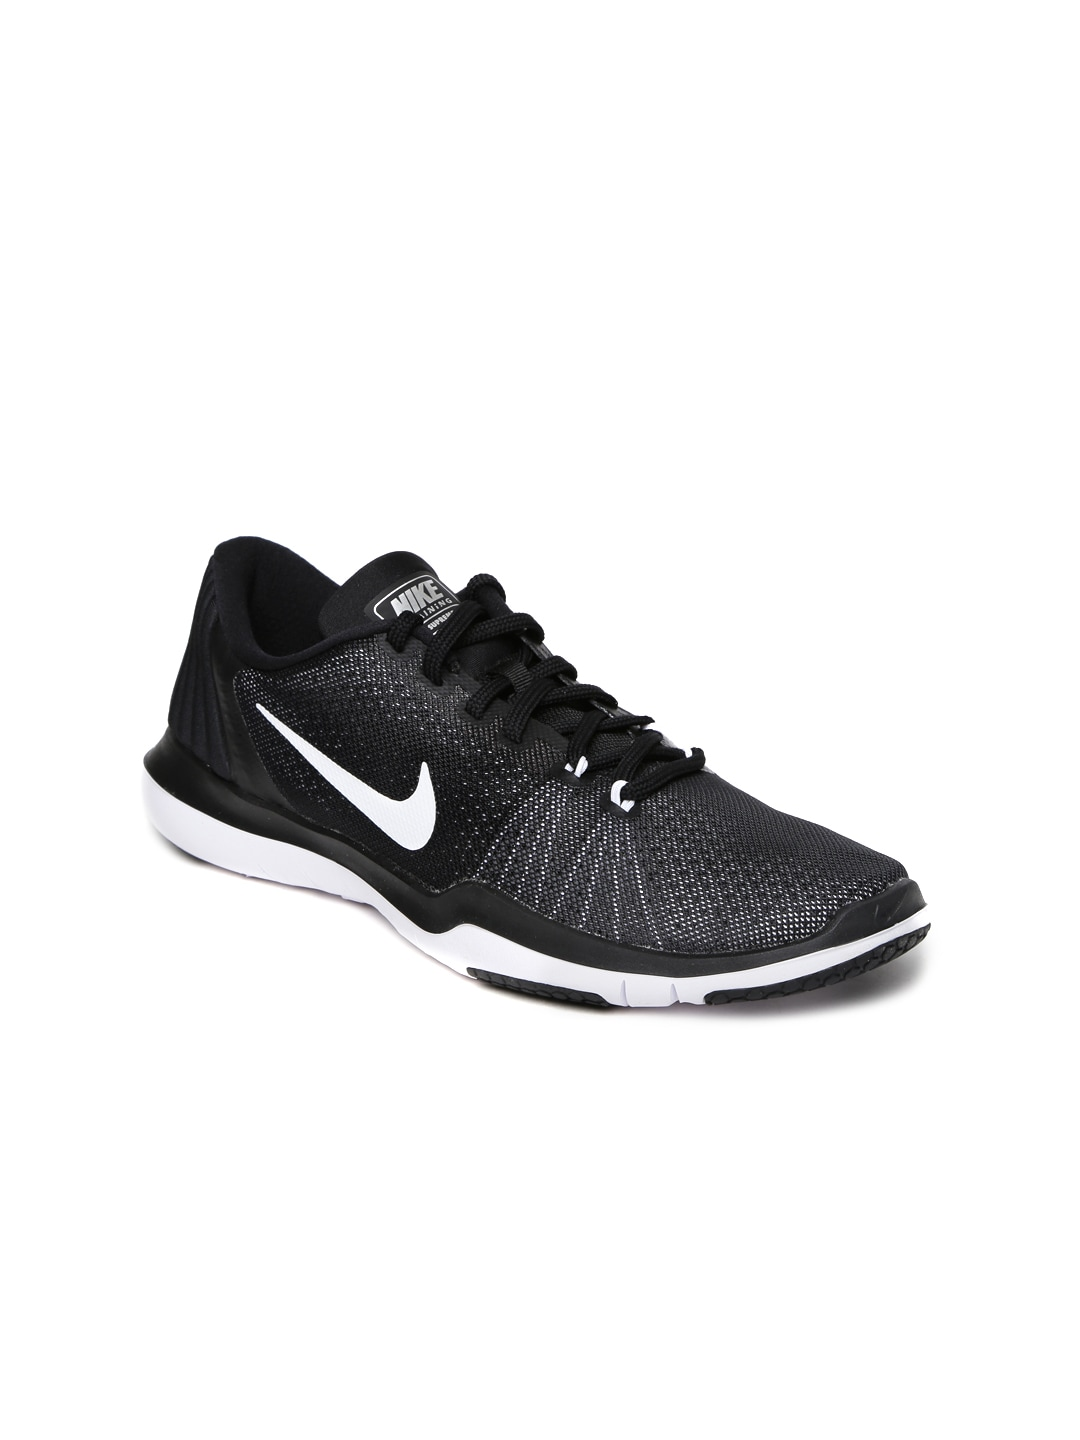 on sale c9320 07347 Women Sports Shoes Store - Buy Women Sports Shoes Store online in India